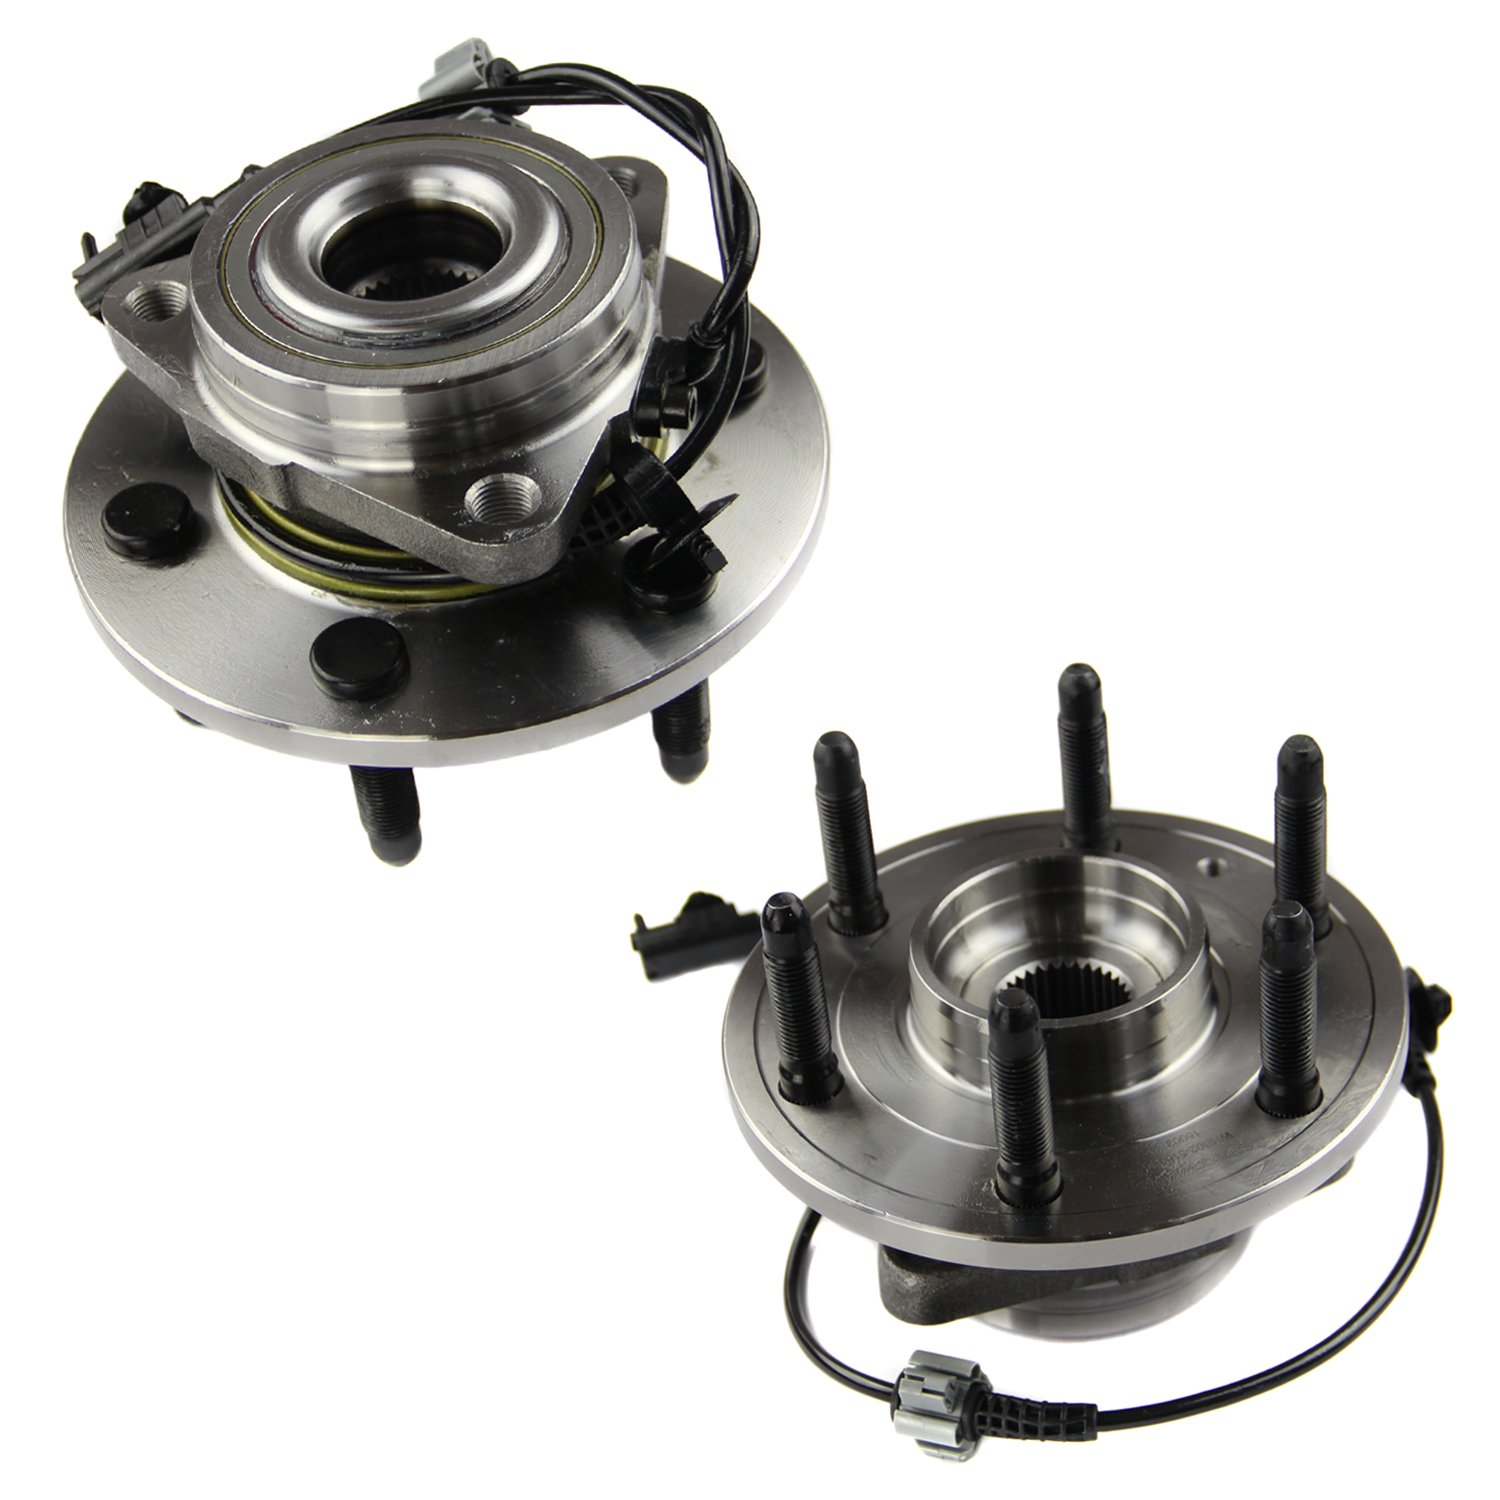 MOTORMAN 515096 Front ABS Wheel Hub and Bearing Set - Both Left and Right - Pair of 2 by MOTORMAN